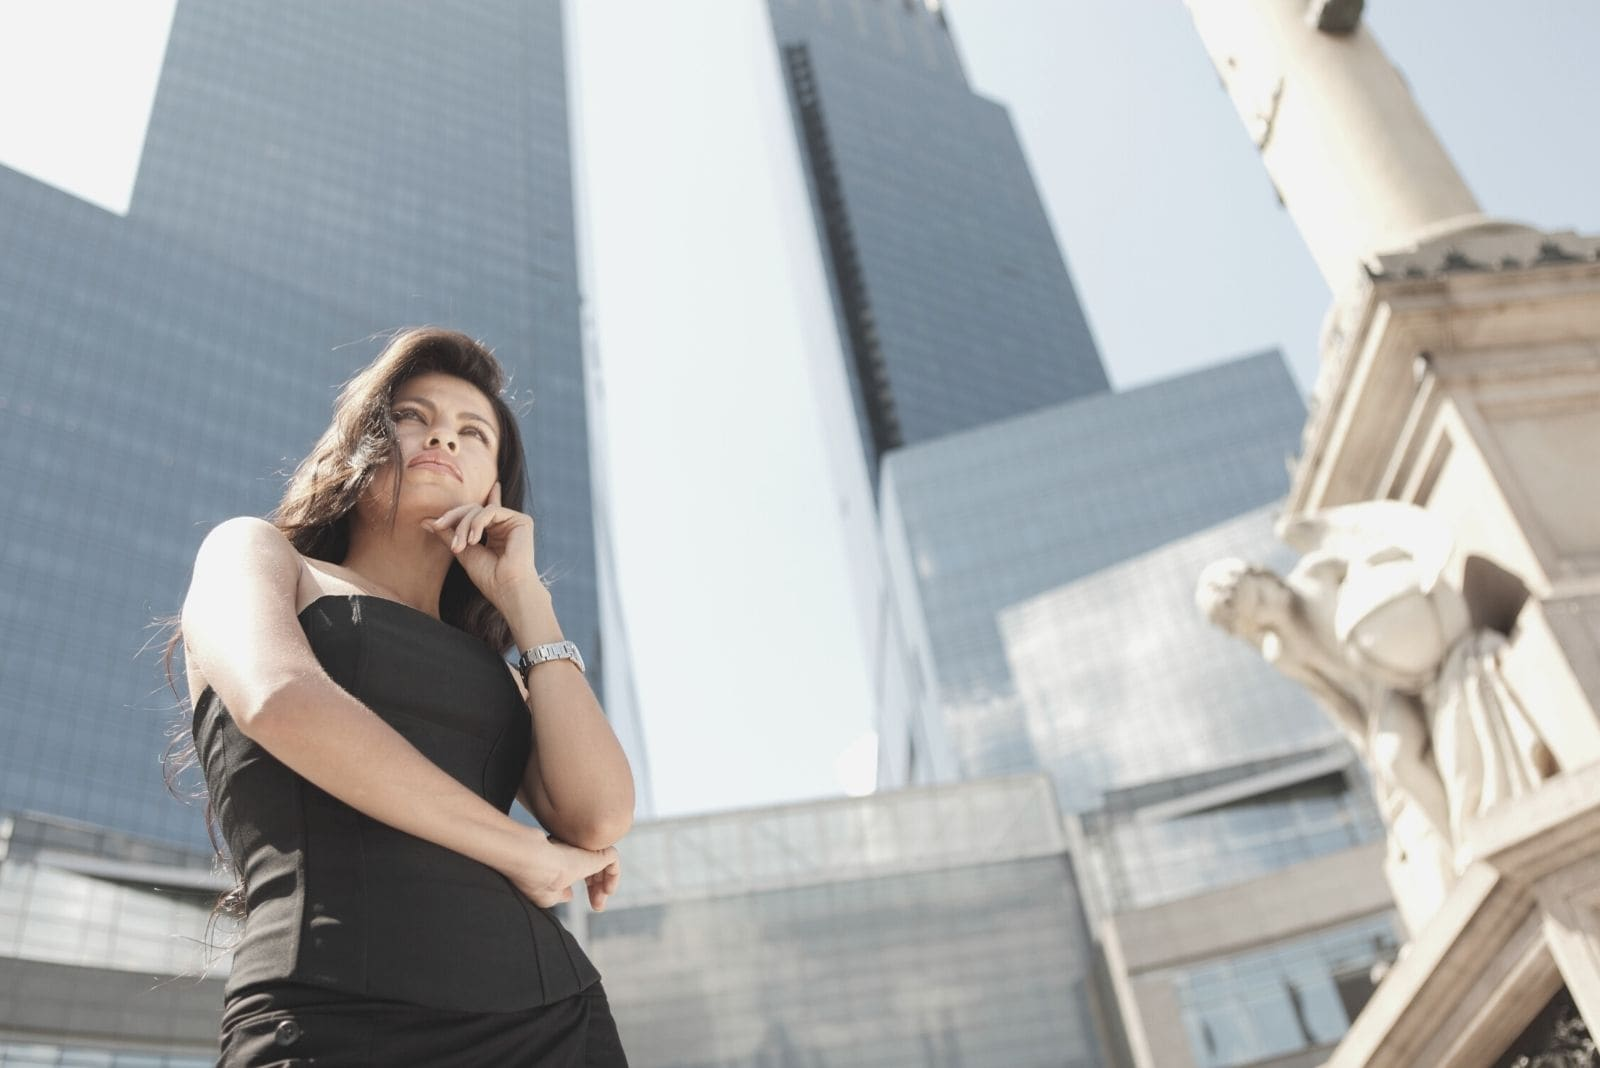 woman in black dress standing near the skyscrapers thinking in low angle